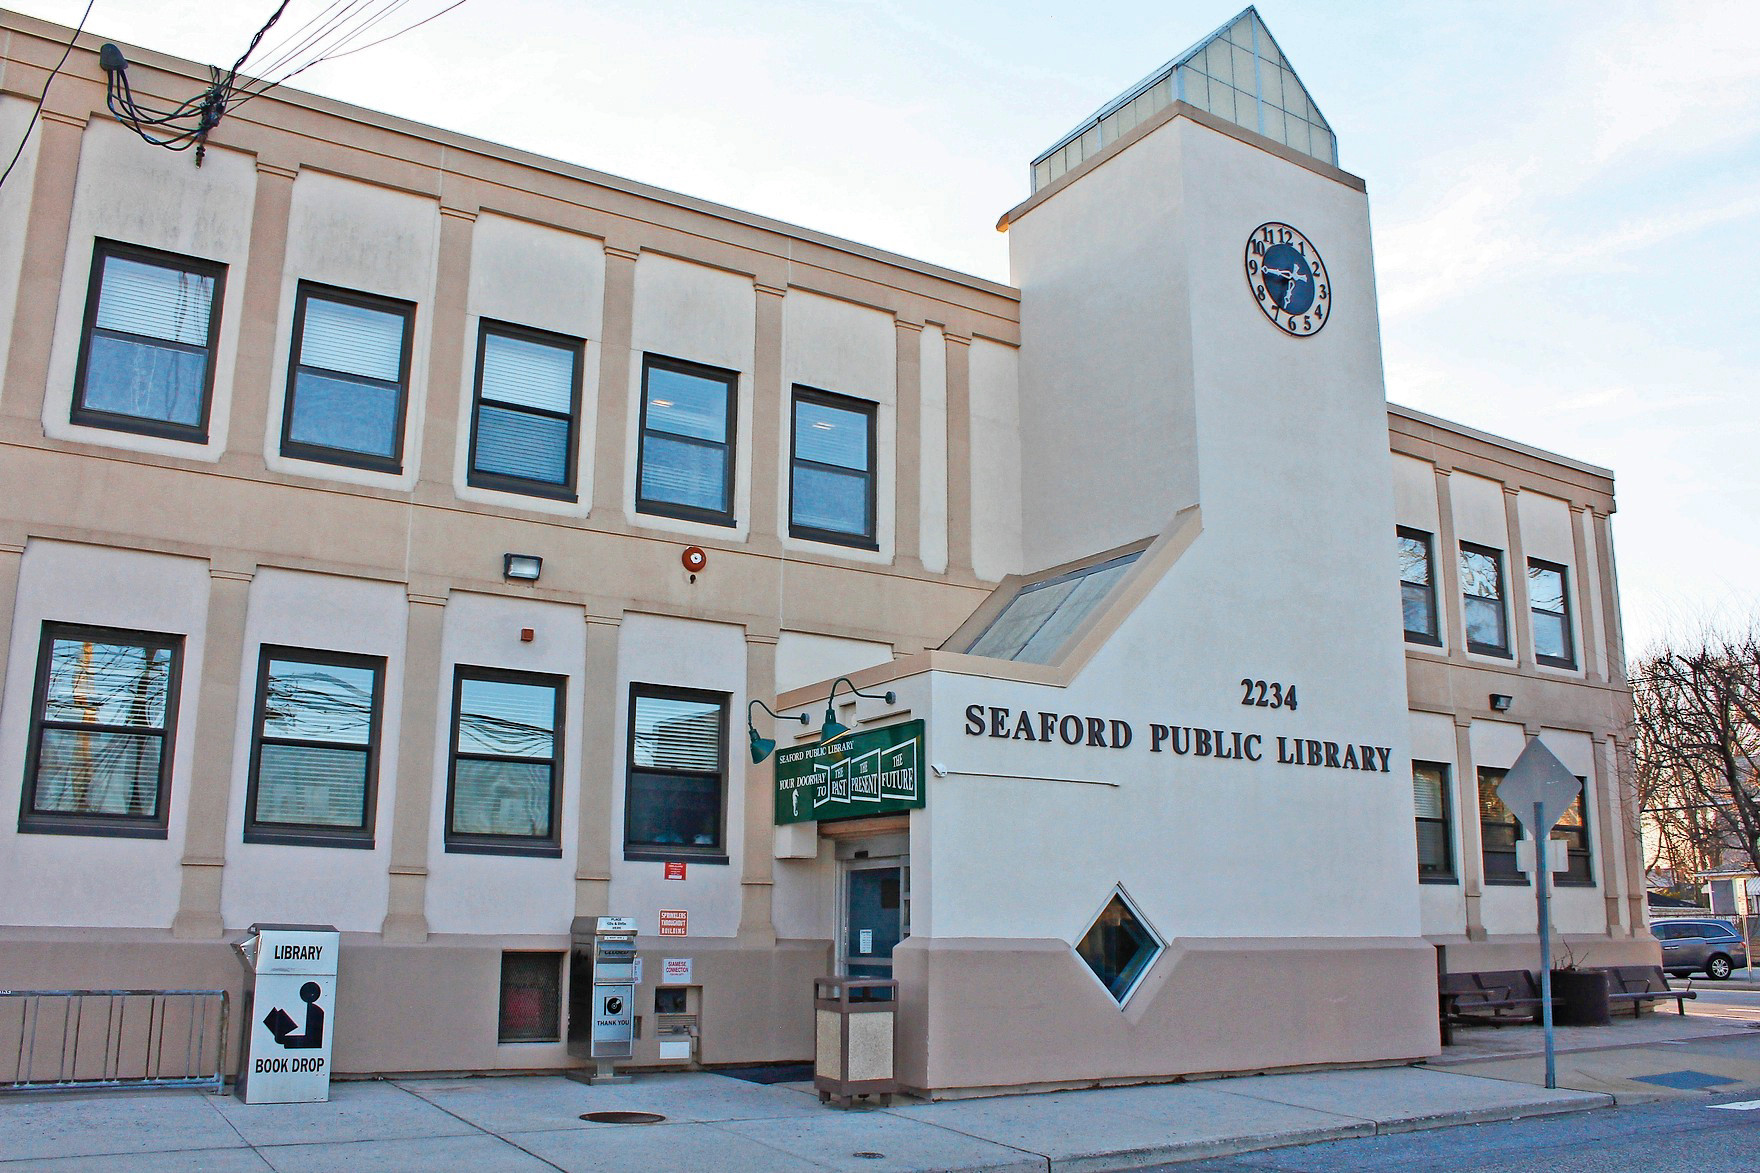 The Seaford Public Library will be hosting a spring speaker series, which began last month and will continue through May.